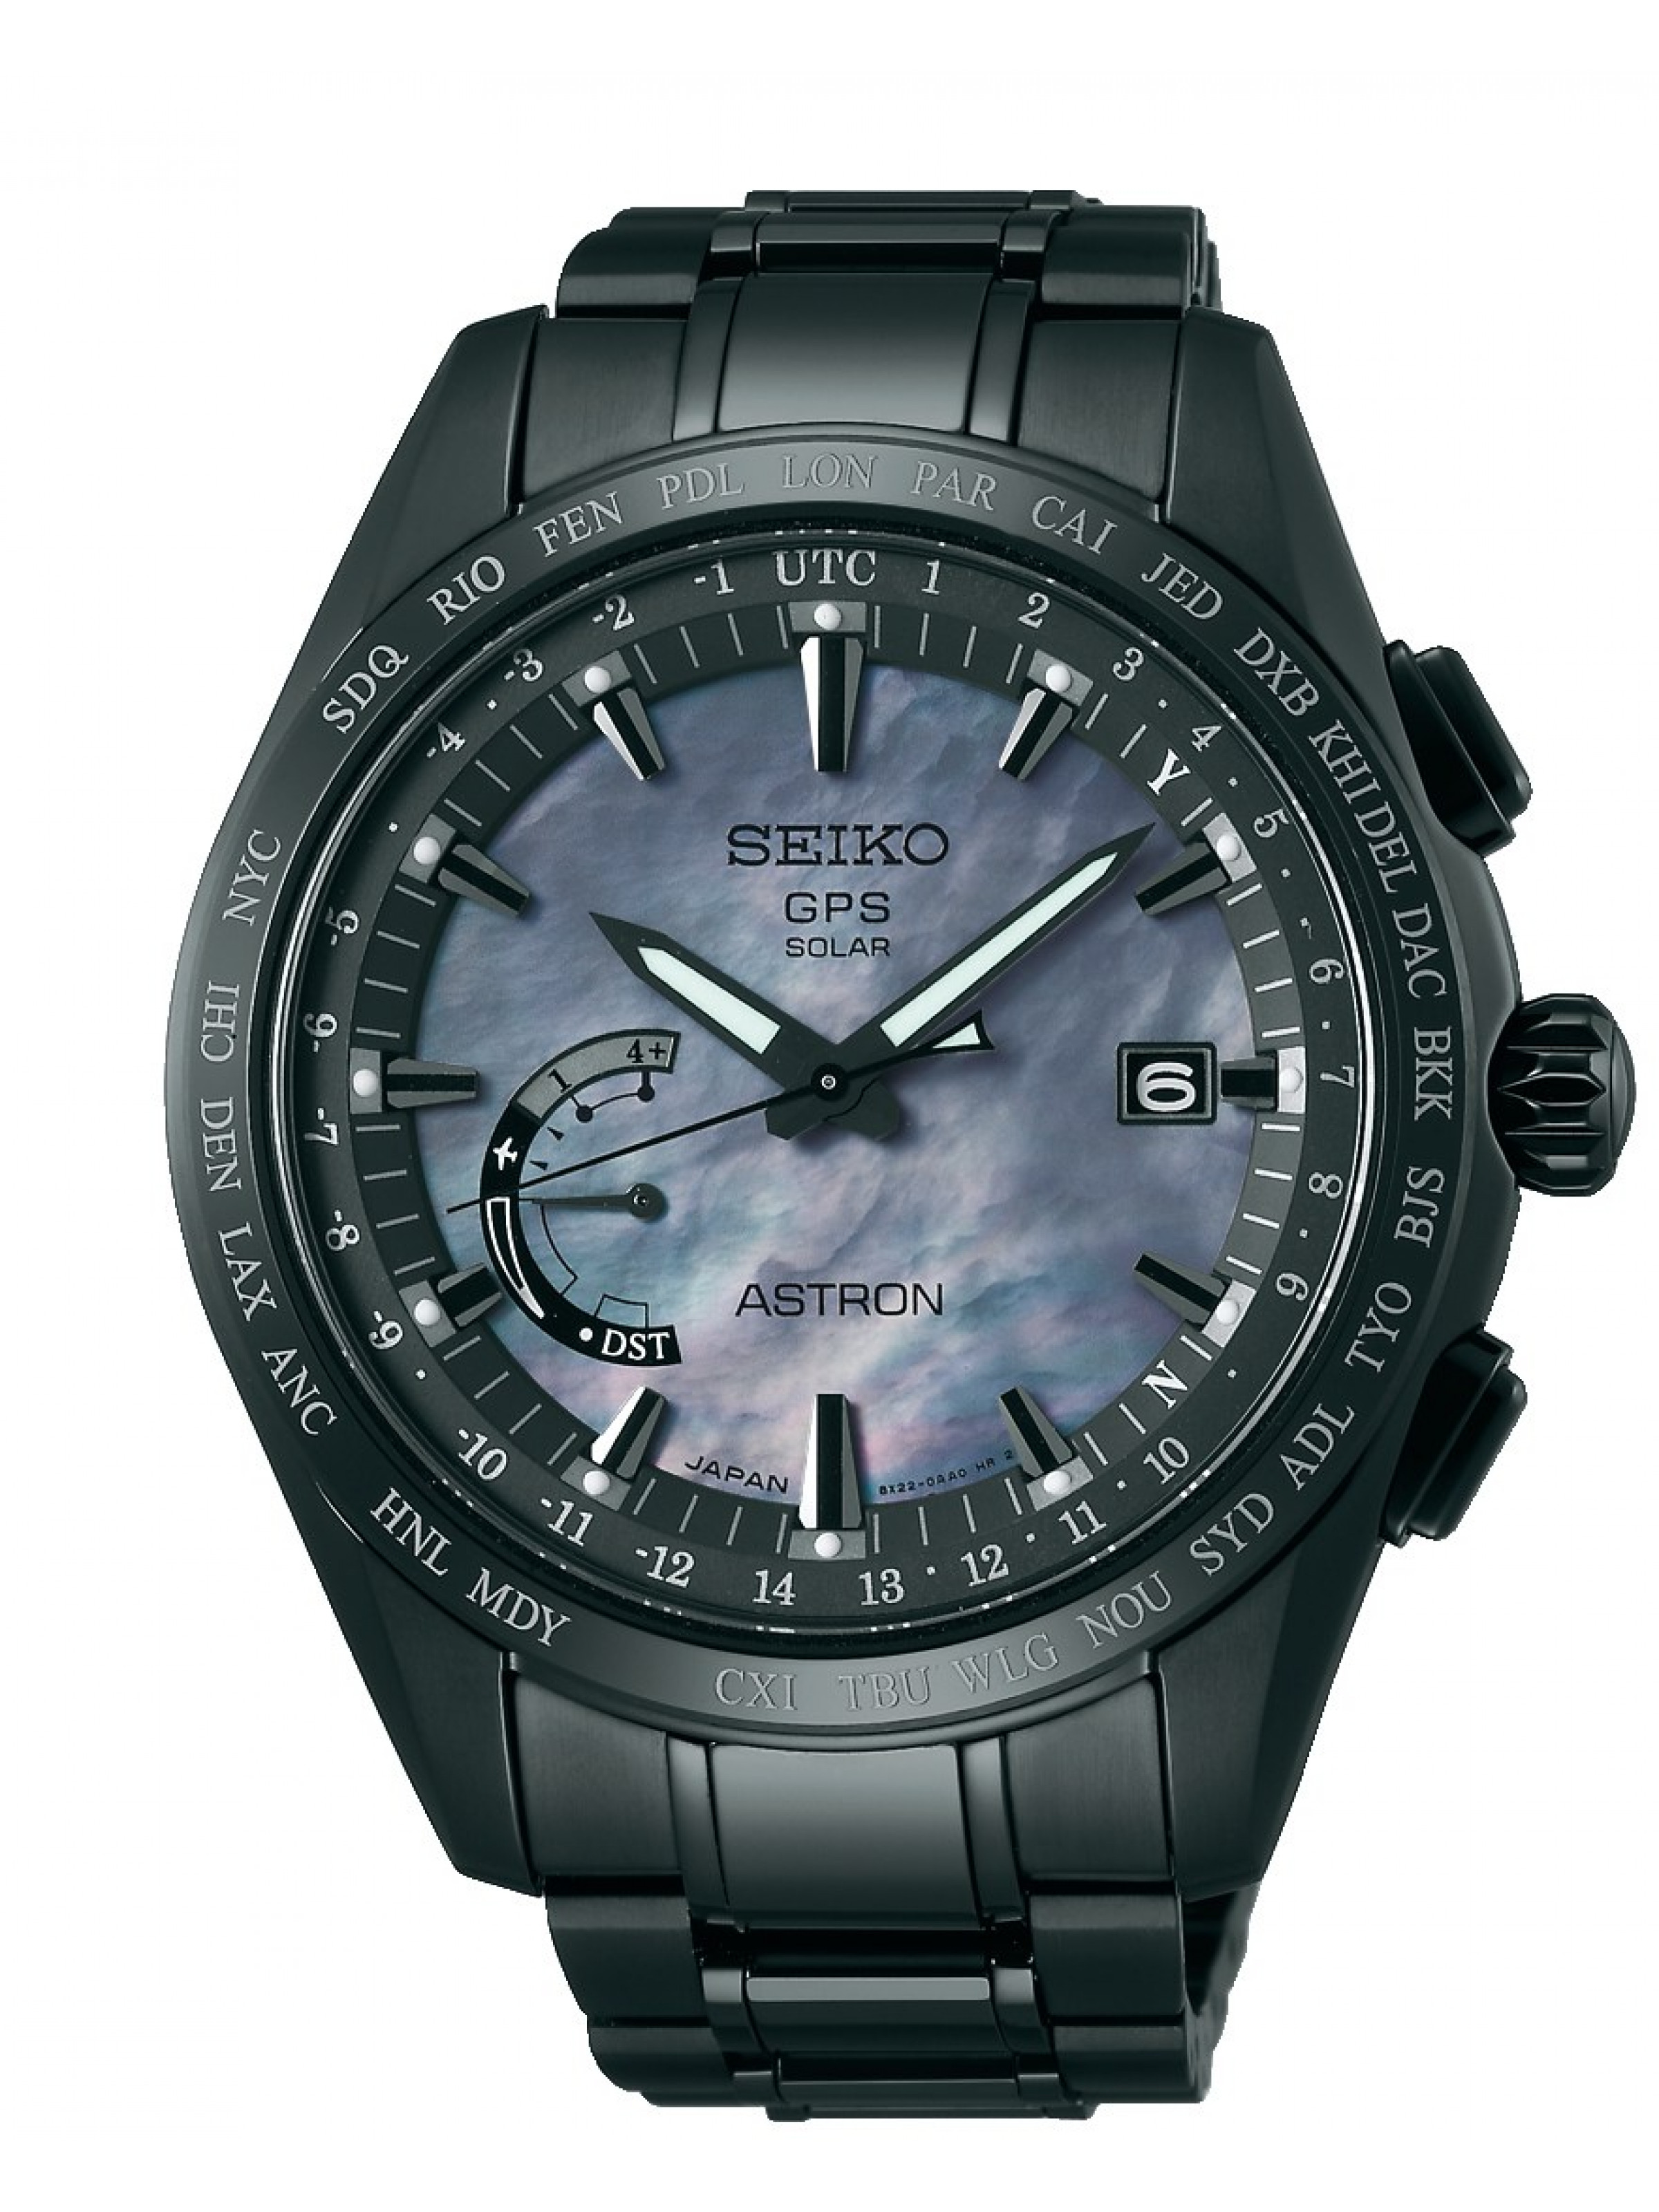 SEIKO Astron GPS SOLAR Limited Edition 2016 SSE091J1